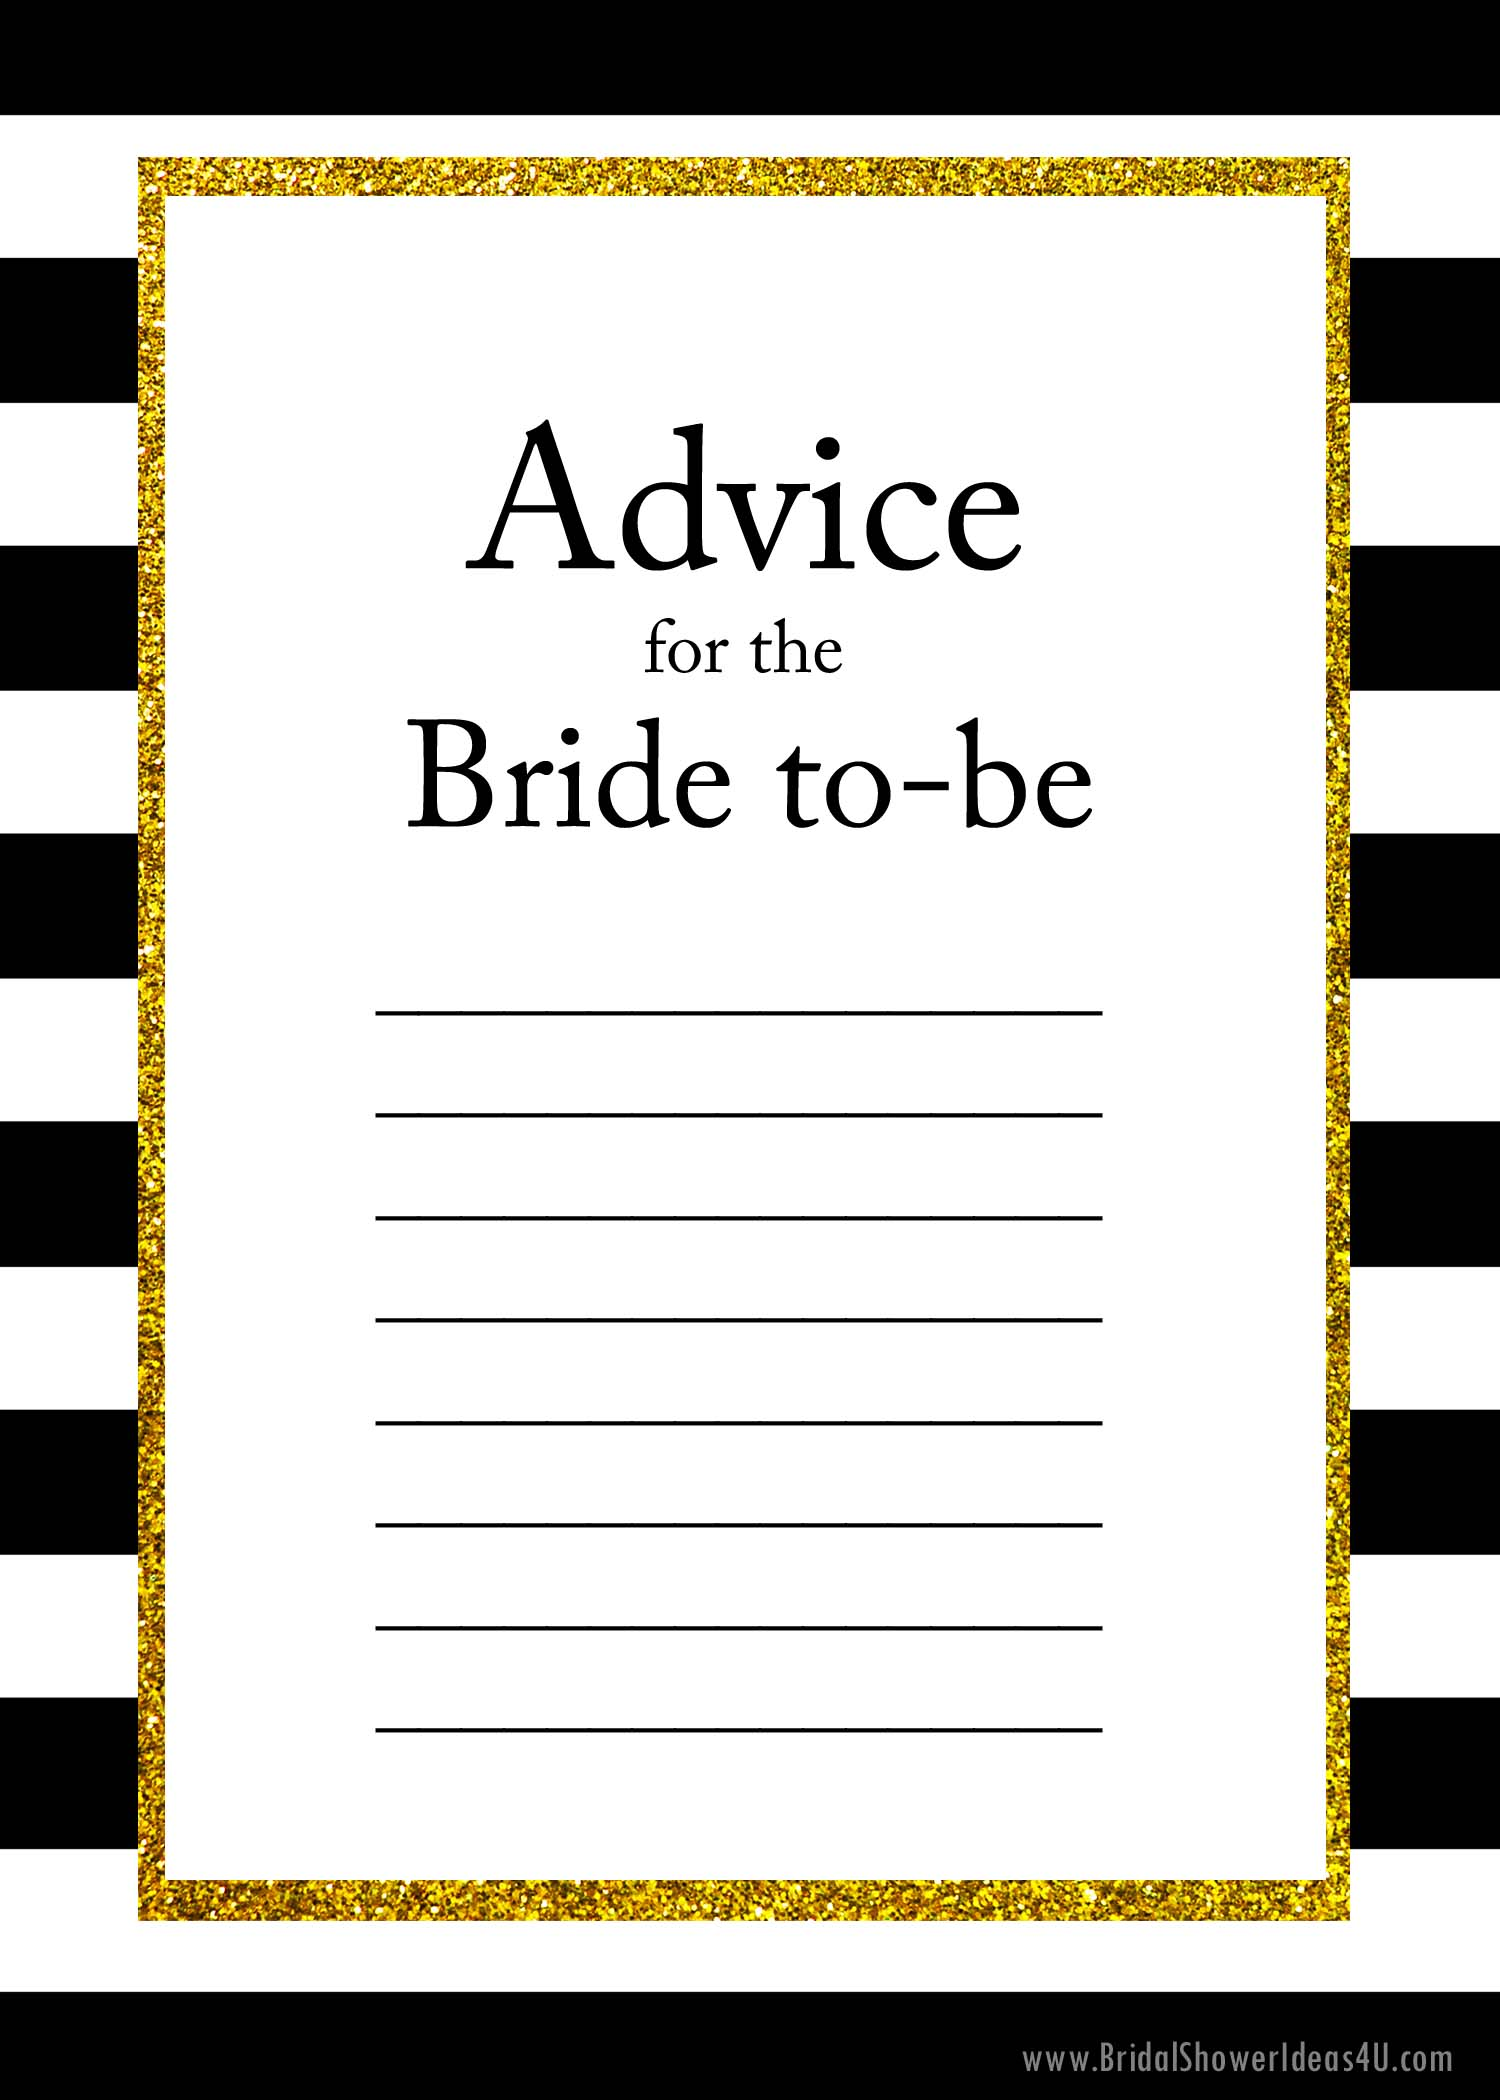 Free printable advice for the bride to be cards for Bridal shower advice cards template